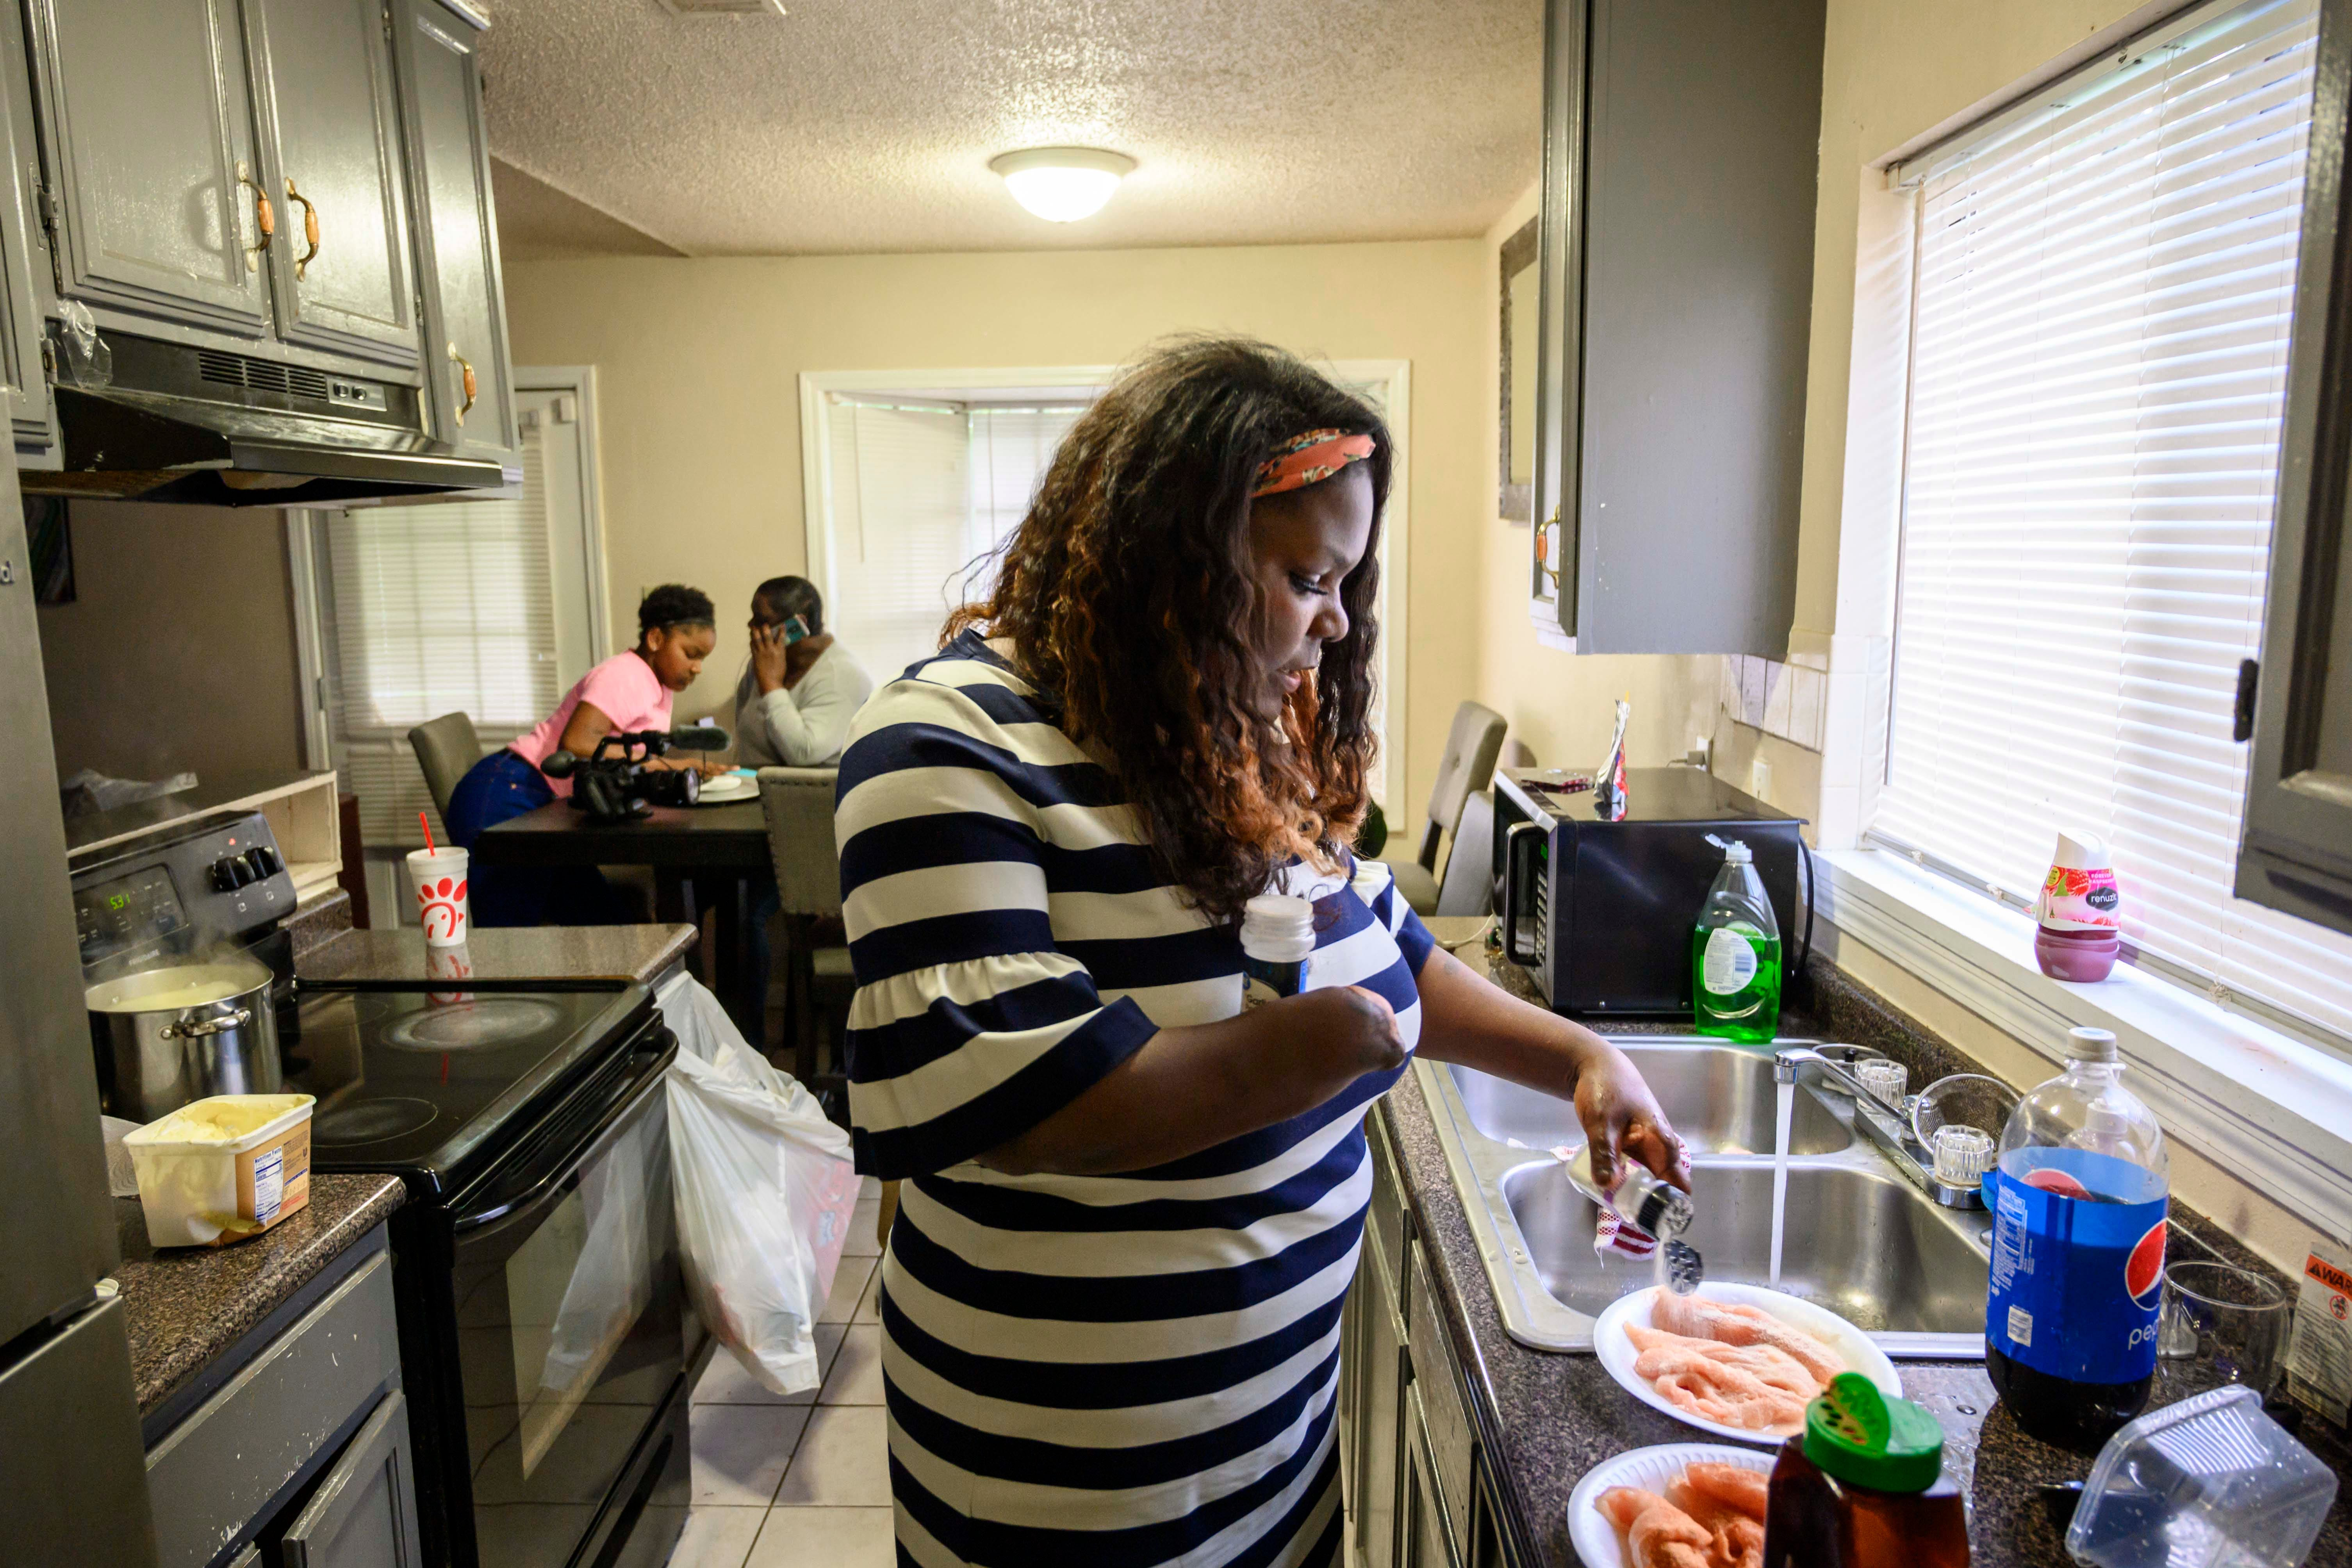 Shantel Smith developed a pelvic infection and gangrene after the delivery of her stillborn son in 2011. She had to learn how to walk, drive and do basic tasks like making dinner for her family after she needed amputations to her hands and legs to save her life.